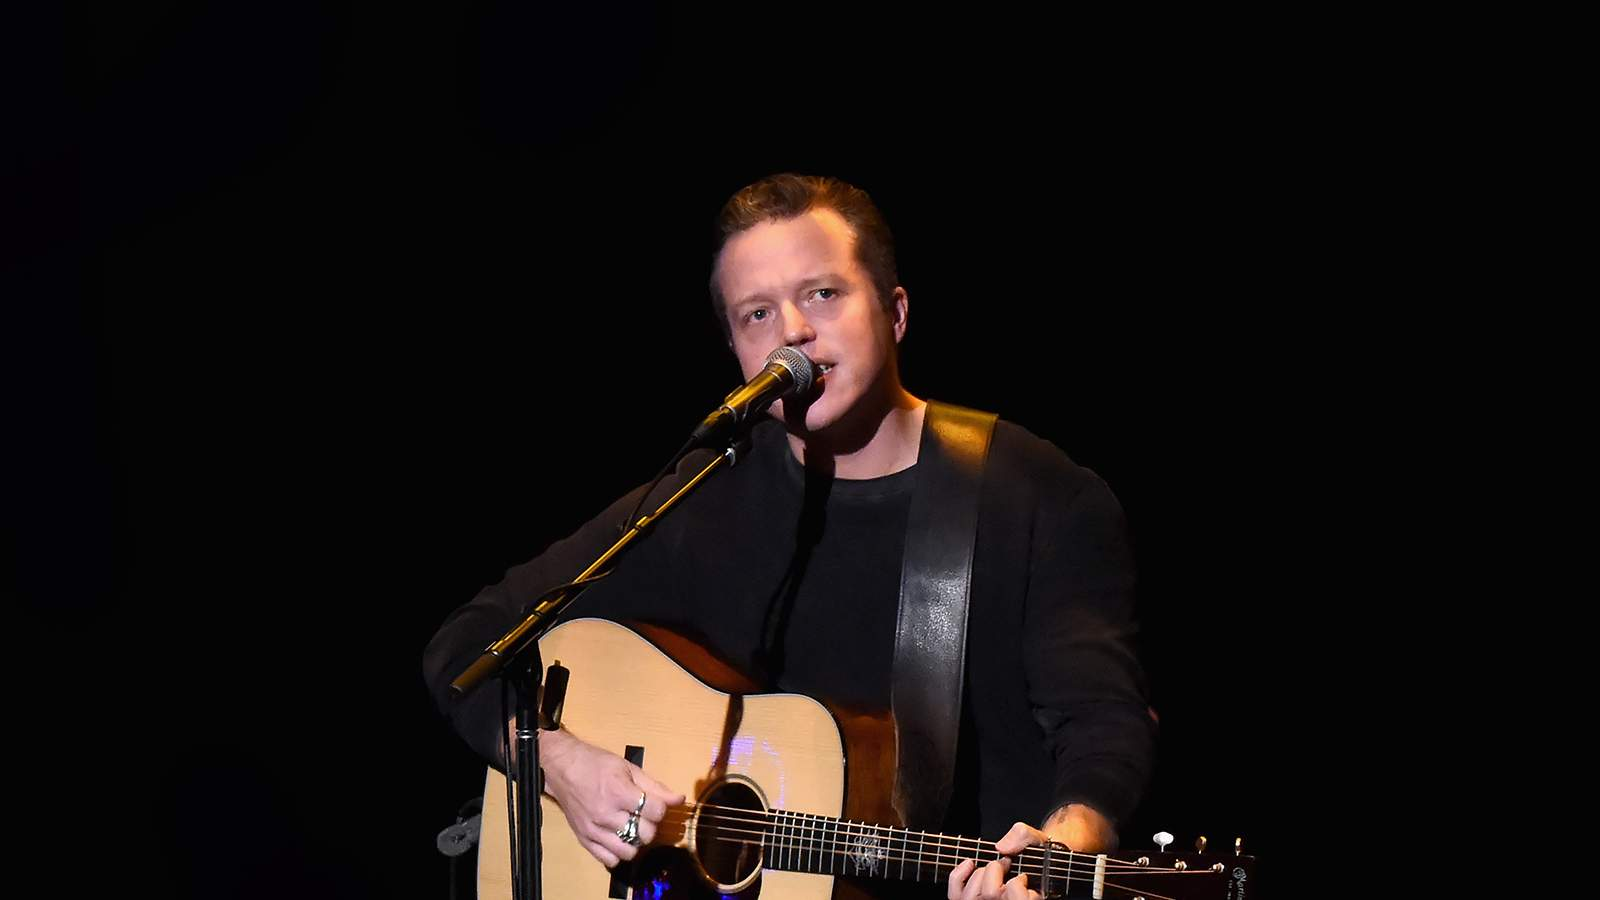 Jason Isbell with Lucinda Williams (Rescheduled from 7/20/2020)